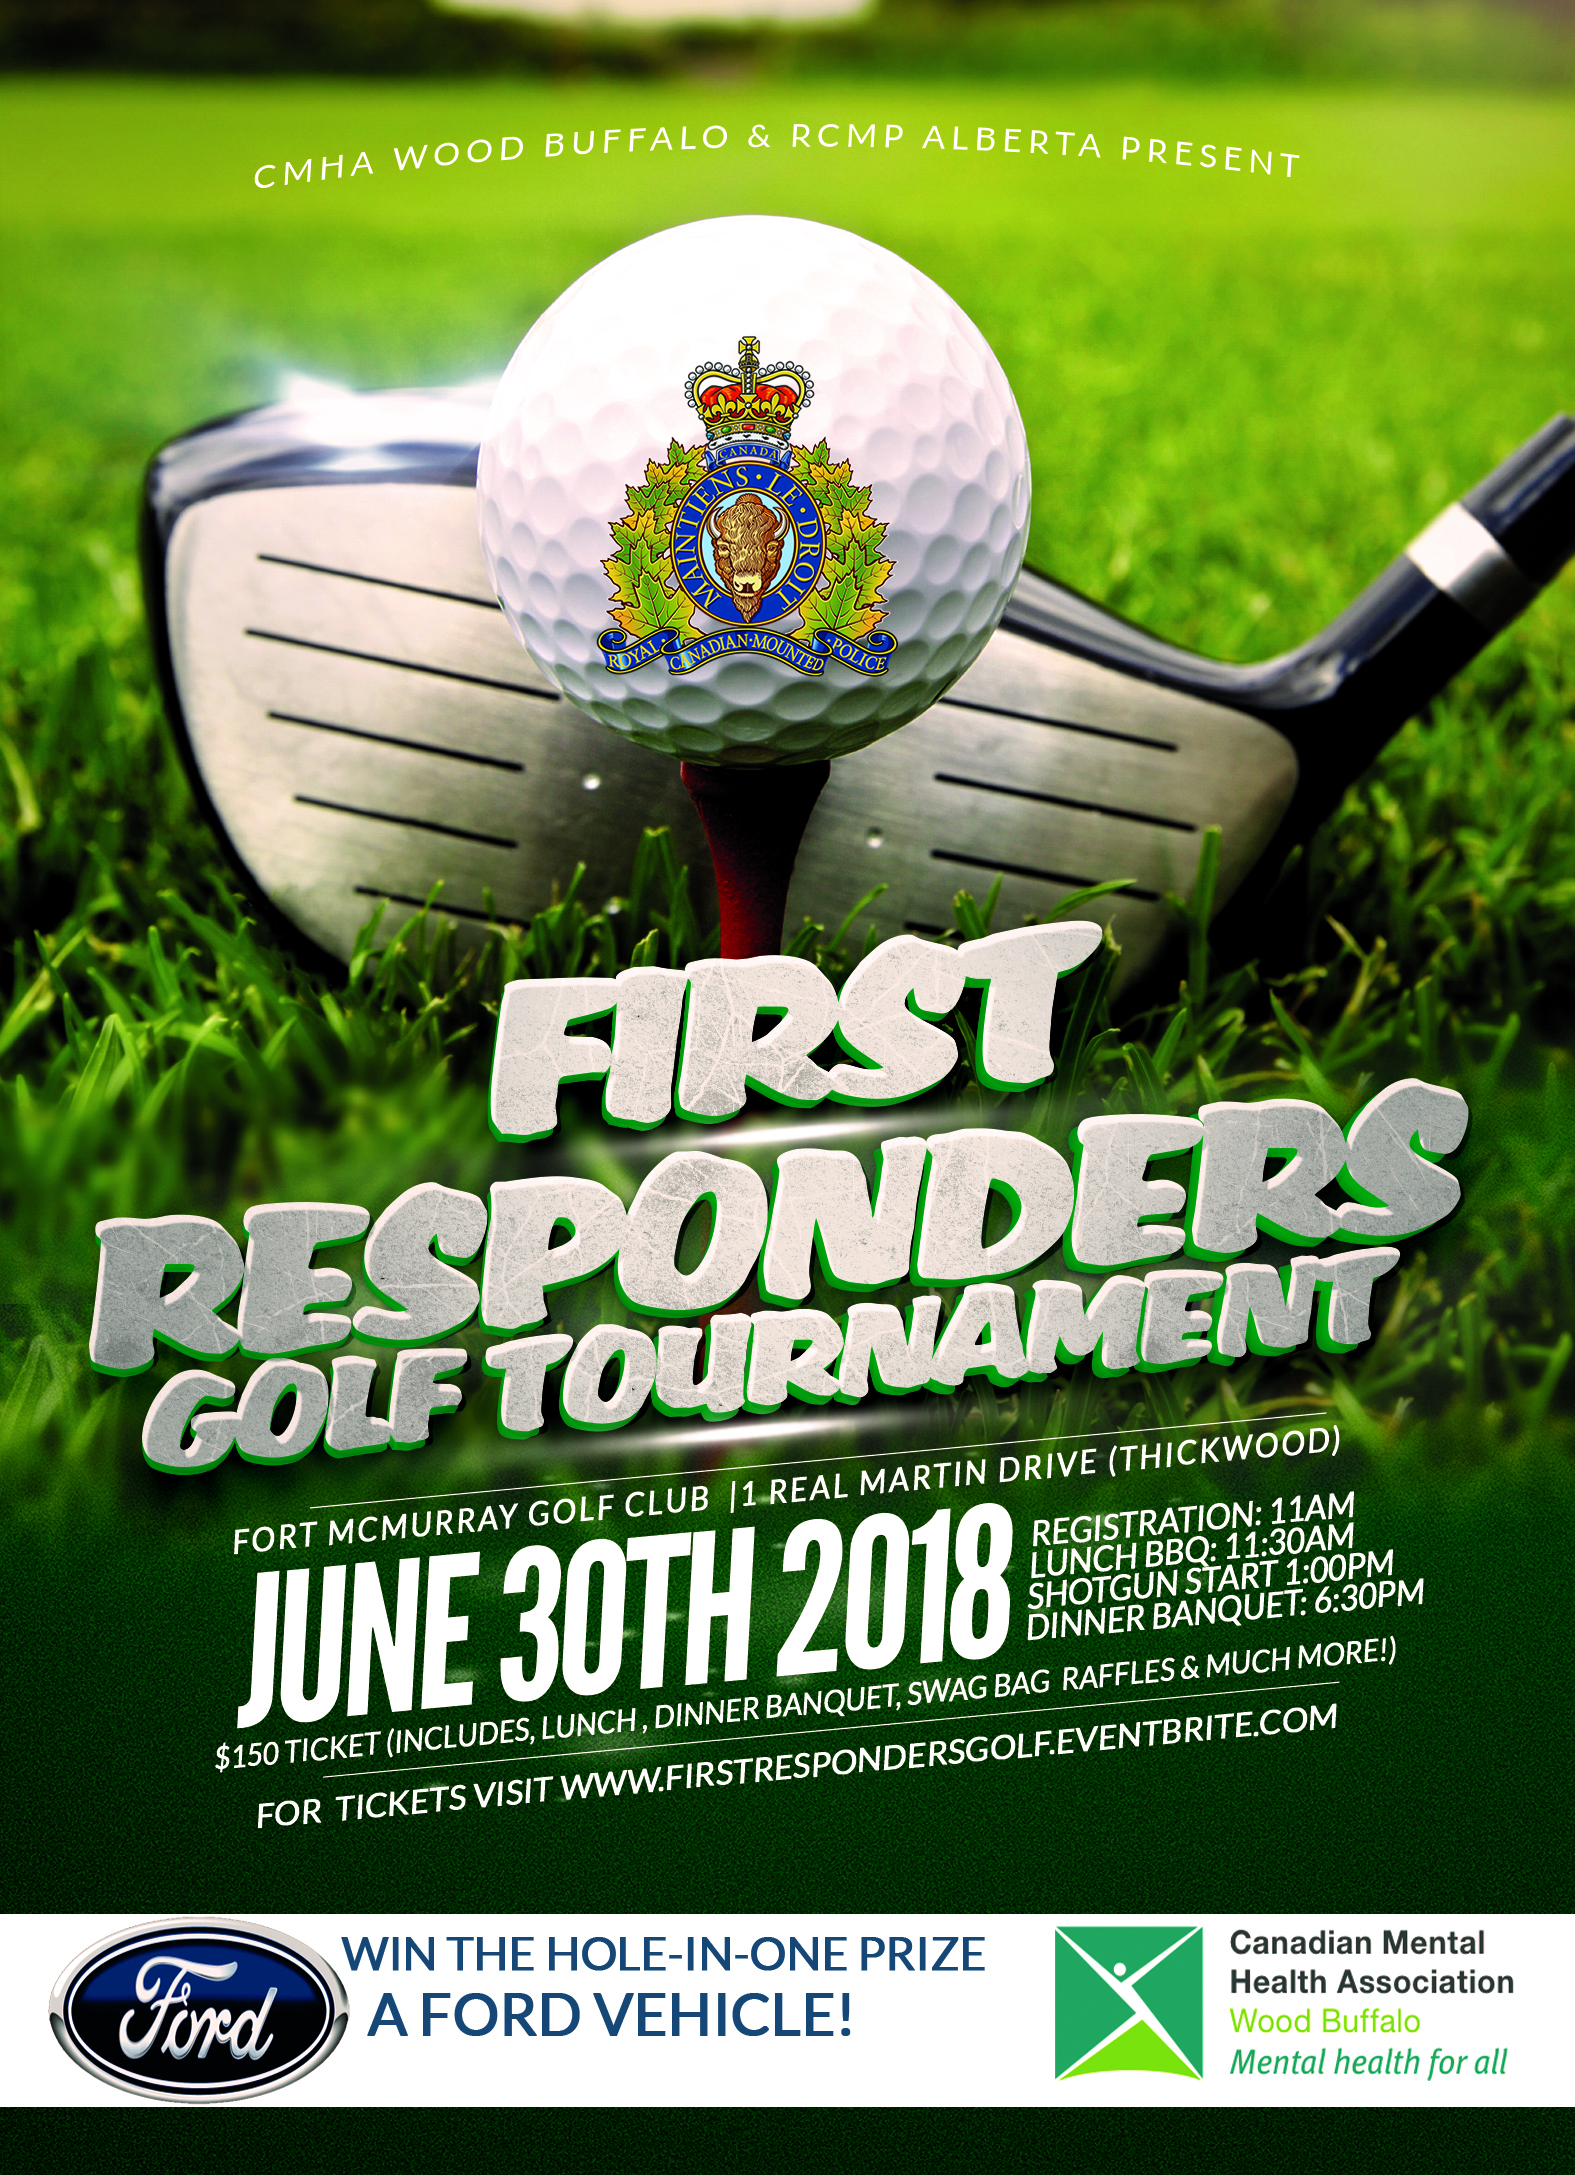 CMHA-Wood Buffalo Hosting Golf Tournament For First Responders